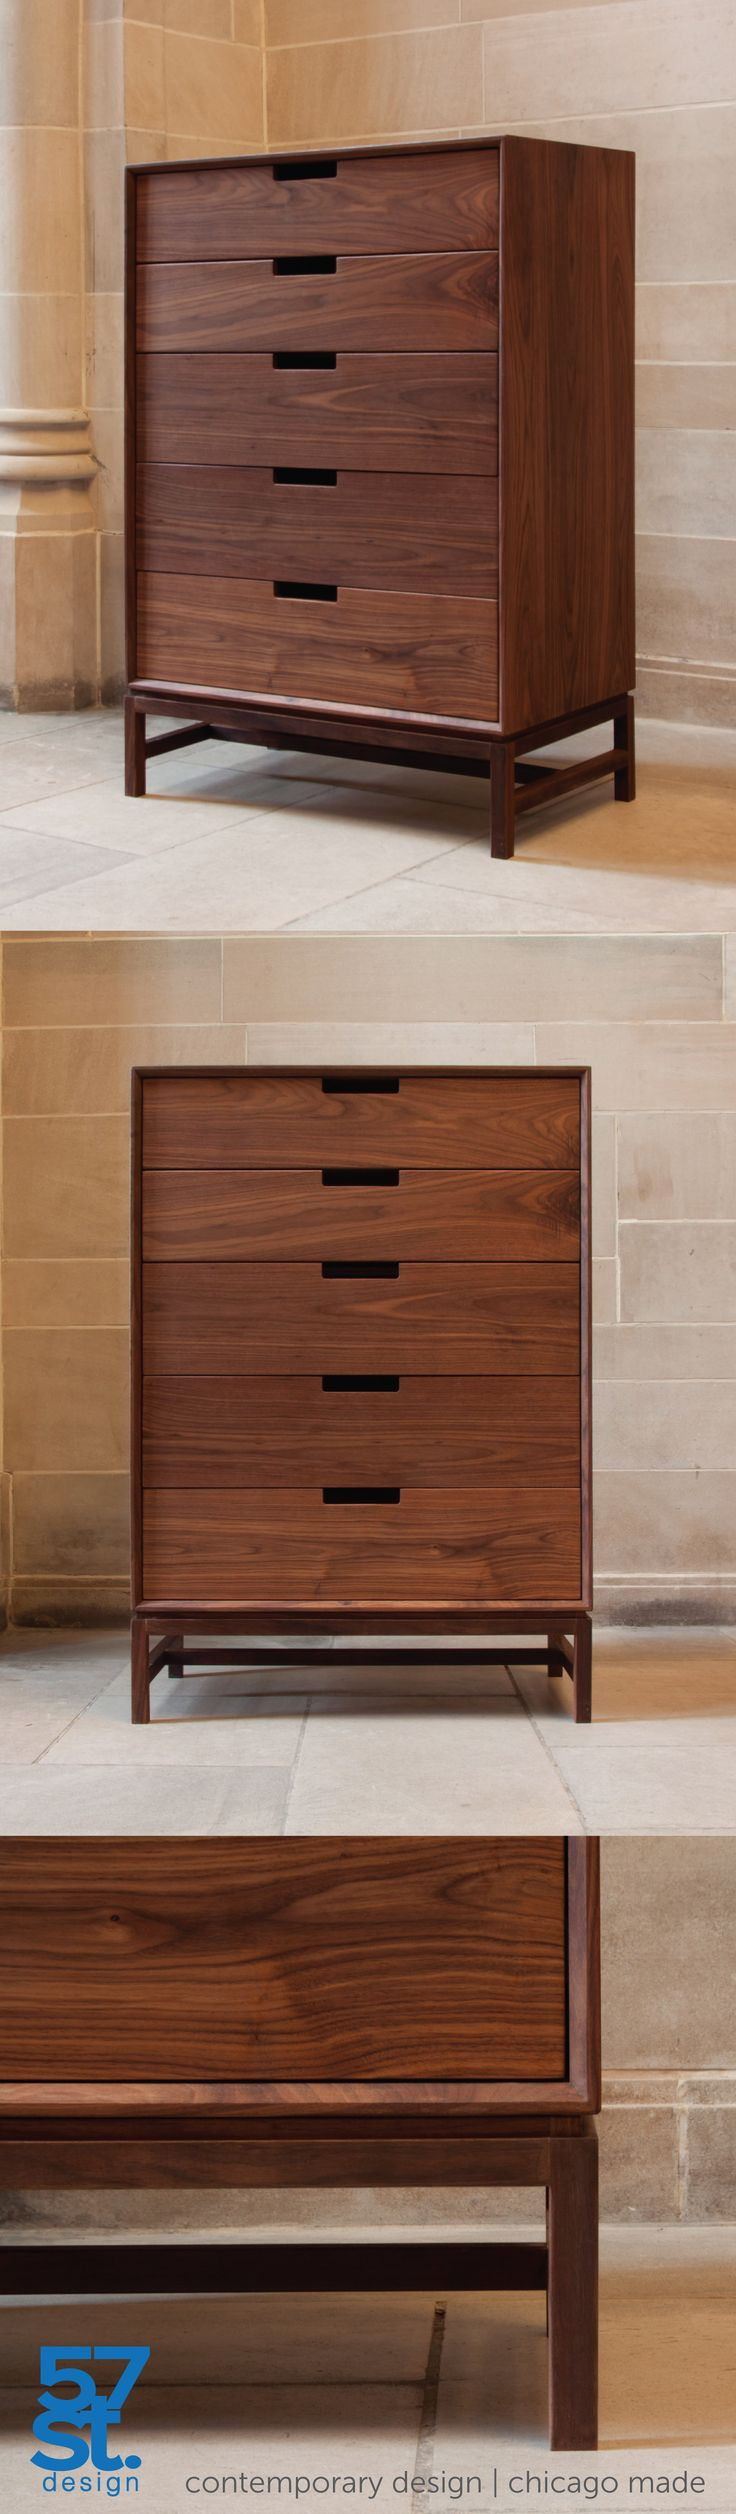 A contemporary dresser with mid-century modern influences, made from solid, American walnut with a hand-rubbed, natural oil + wax finish. The Forde Tallboy Dresser by 57st. design. Designed and proudly crafted in Chicago. Available in a variety of wood types and finishes; also available in custom dimensions.